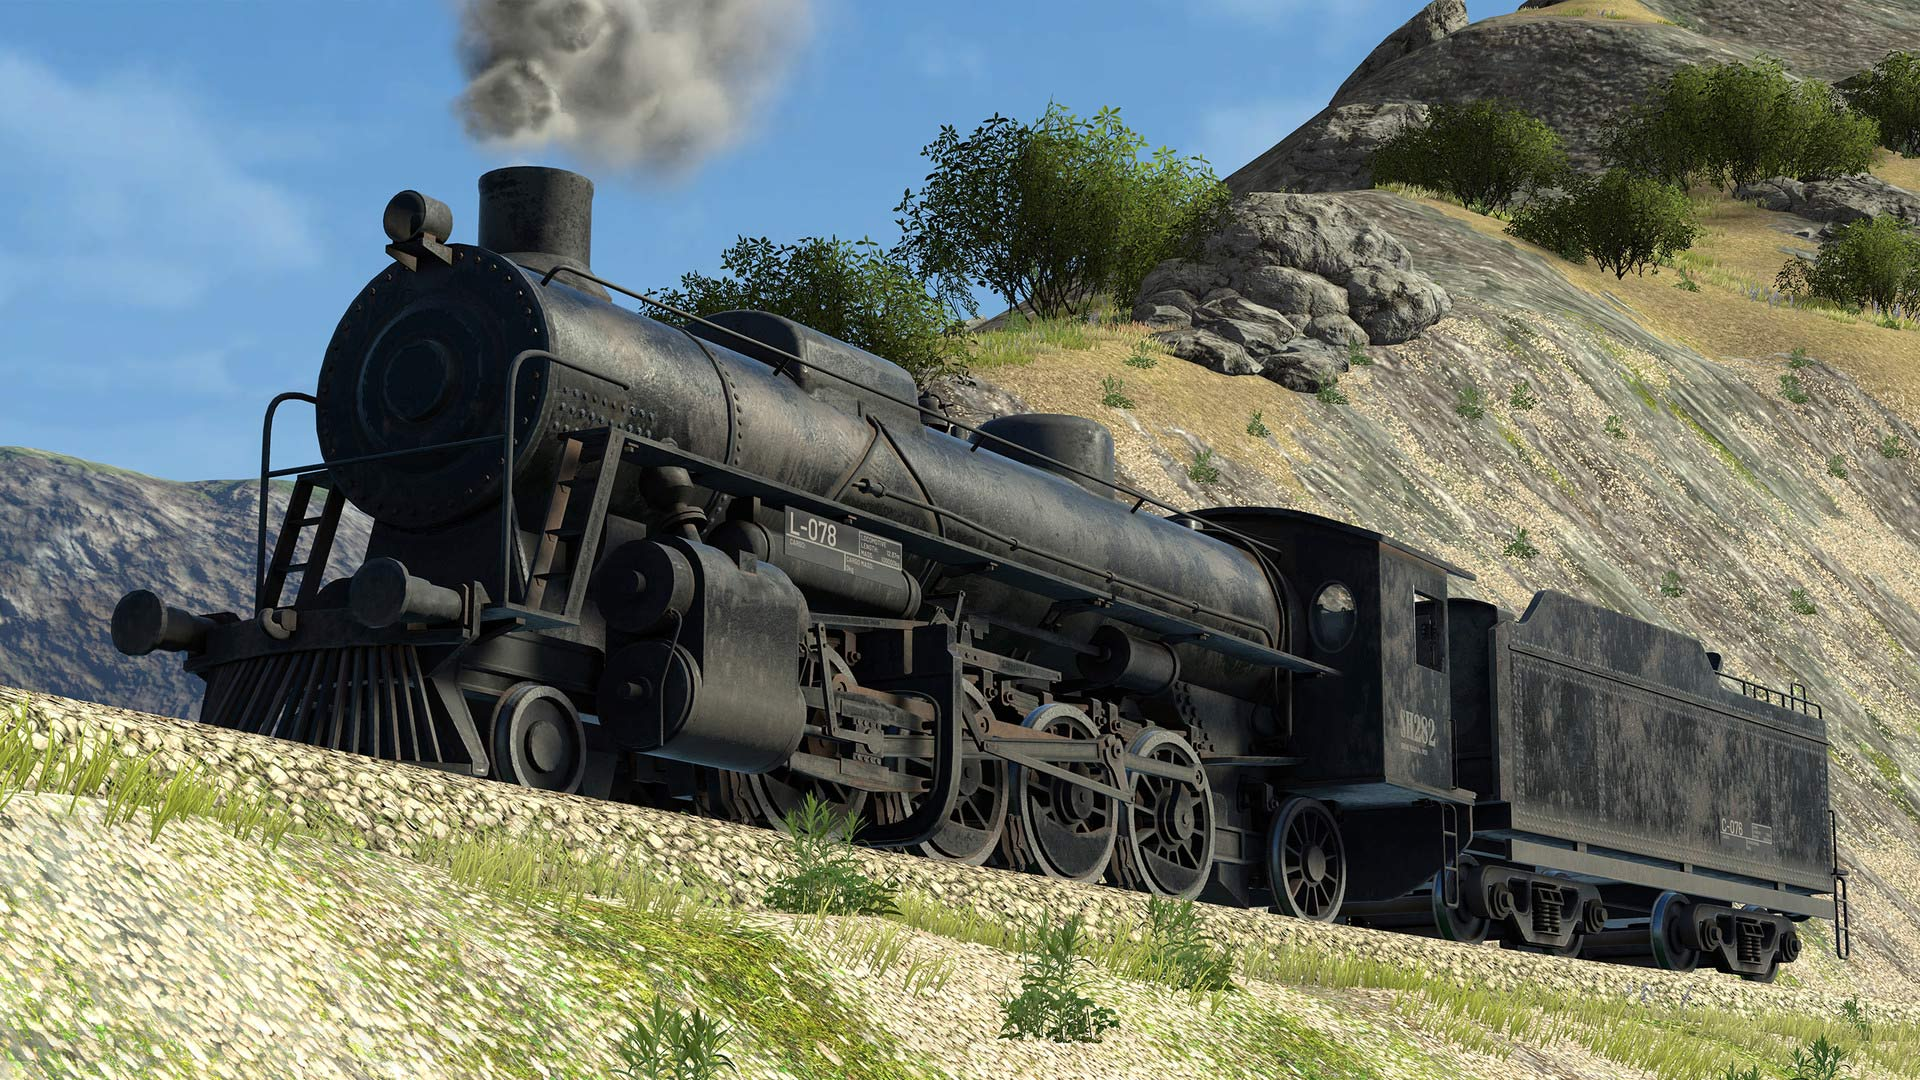 VR Train Simulator 'Derail Valley' to Launch into Early Access This Week